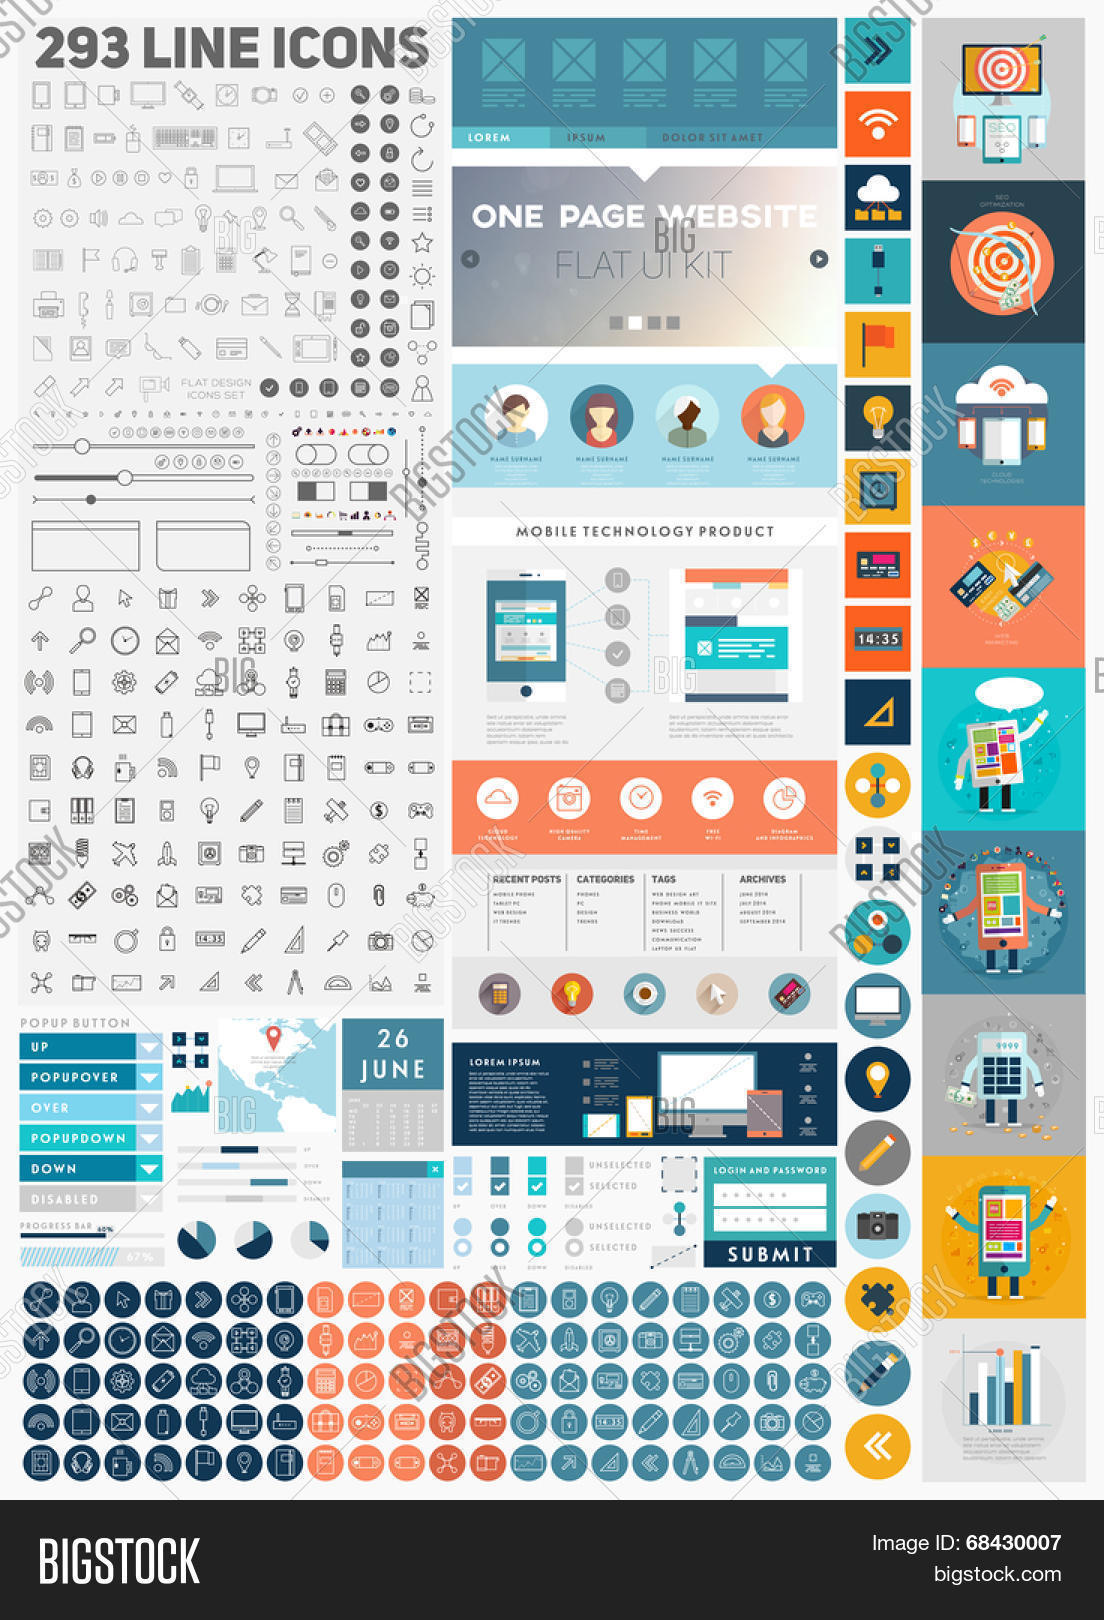 One Page Website Vector Photo Free Trial Bigstock